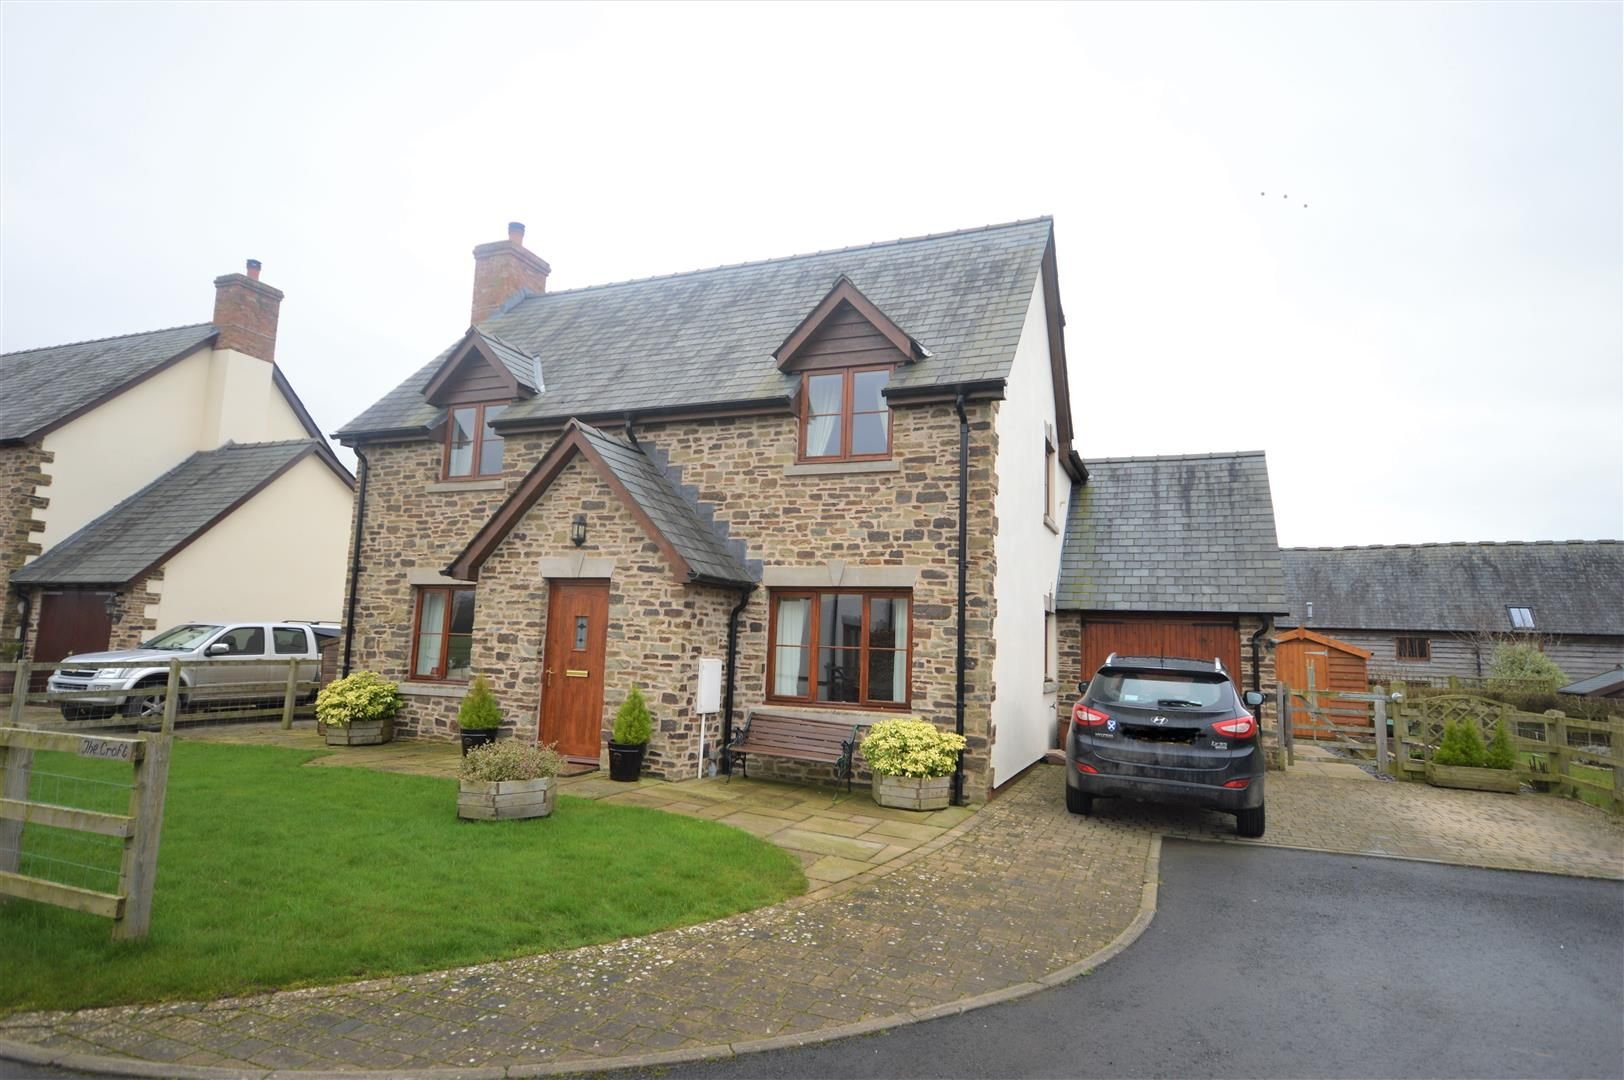 4 bed detached for sale in Eardisley 1